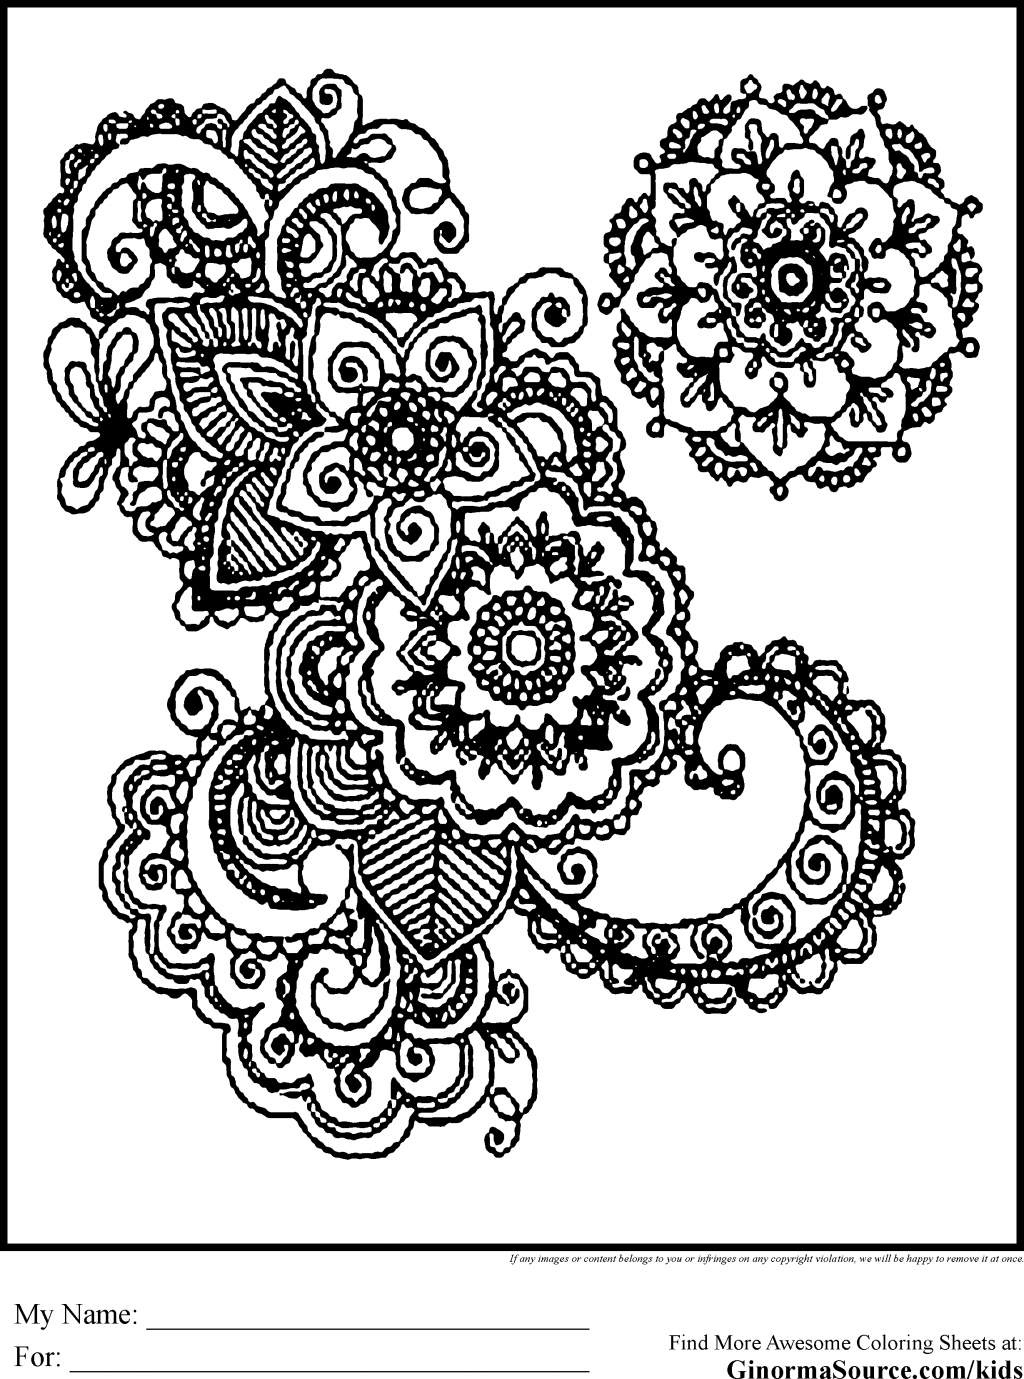 http yourcoloringpage com appealing coloring for teenagers